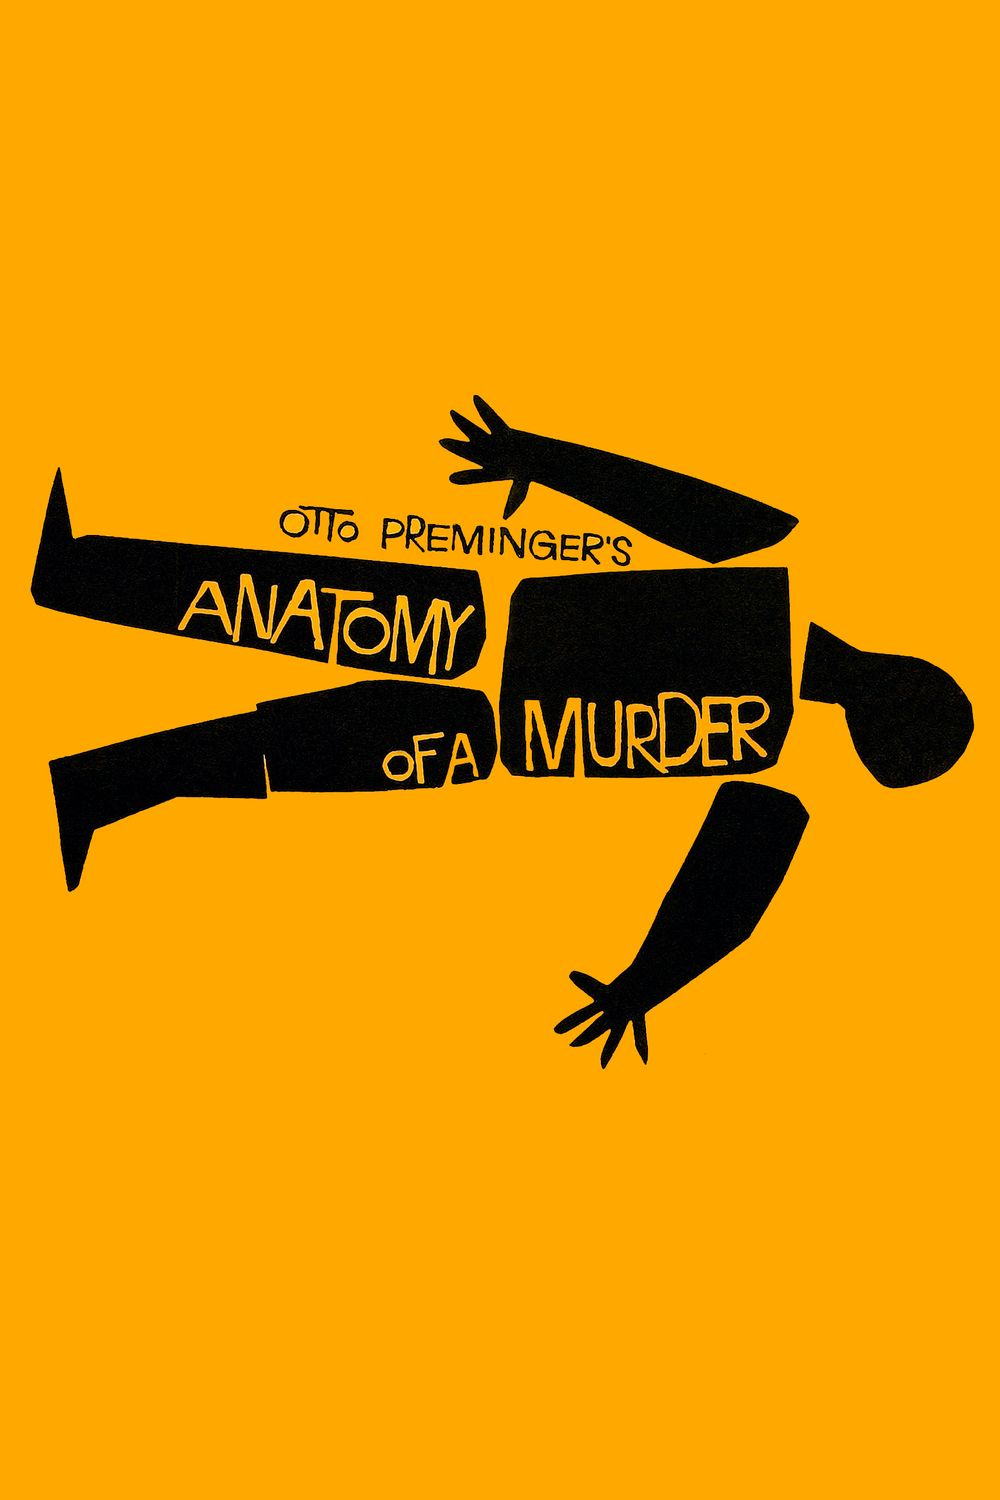 click image to watch Anatomy of a Murder (1959) | wOw | Pinterest ...